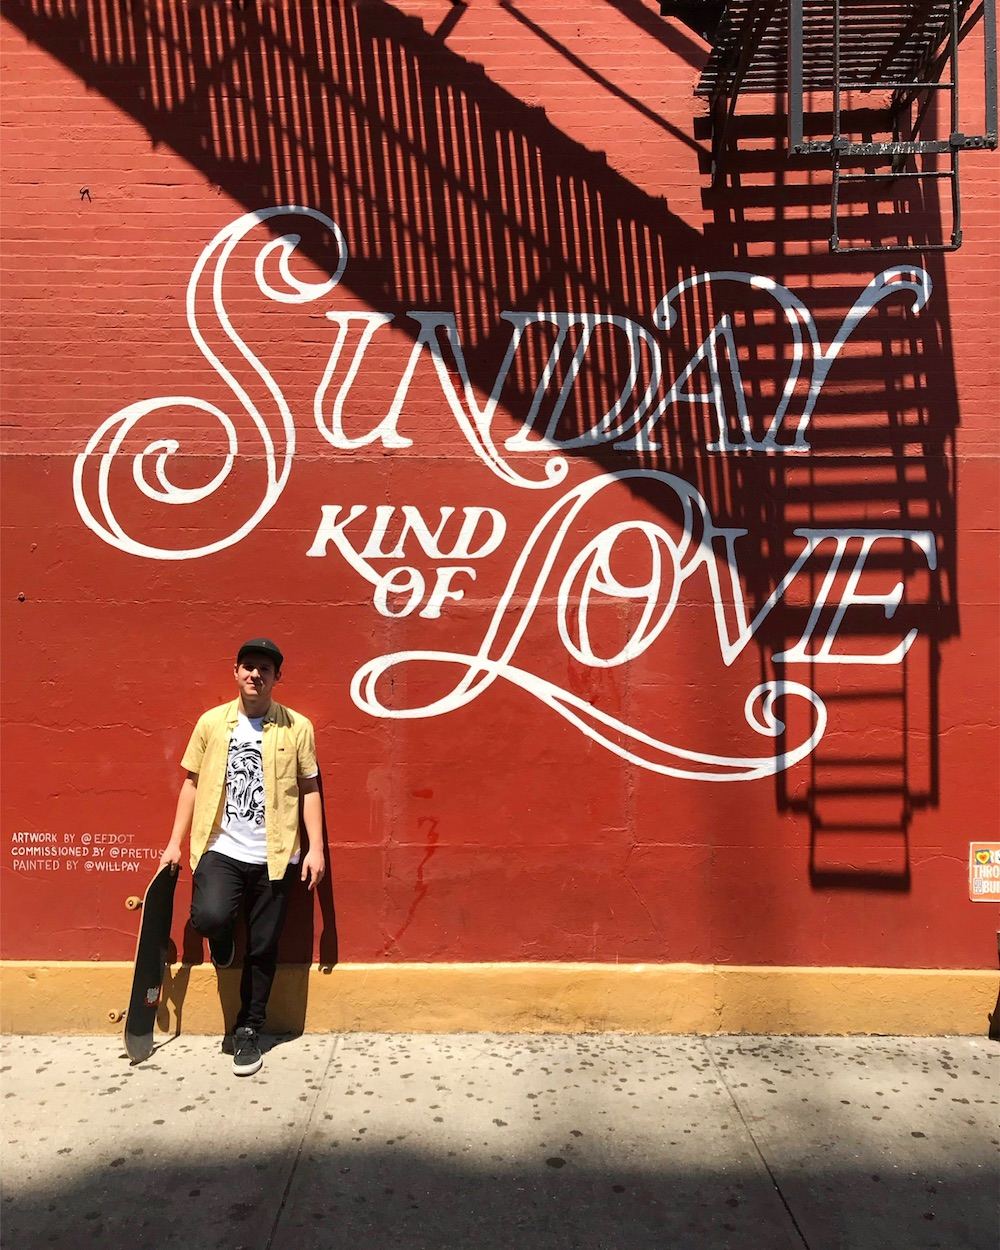 Efdot_sunday_kind_of_love_mural.JPG